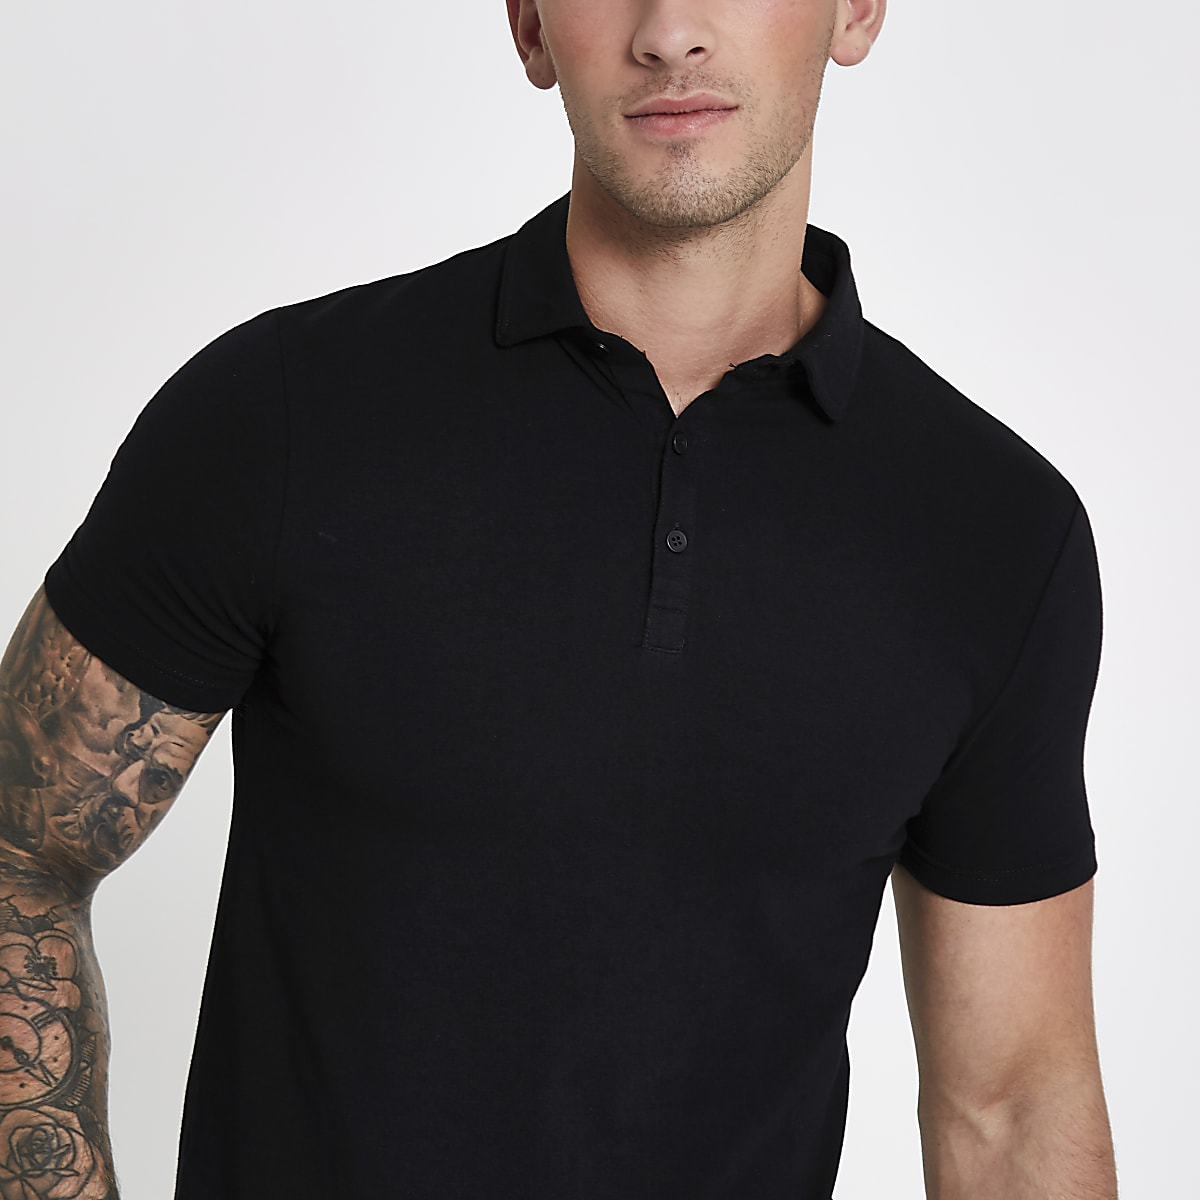 61c438413 Black essential muscle fit polo shirt - Polo Shirts - men